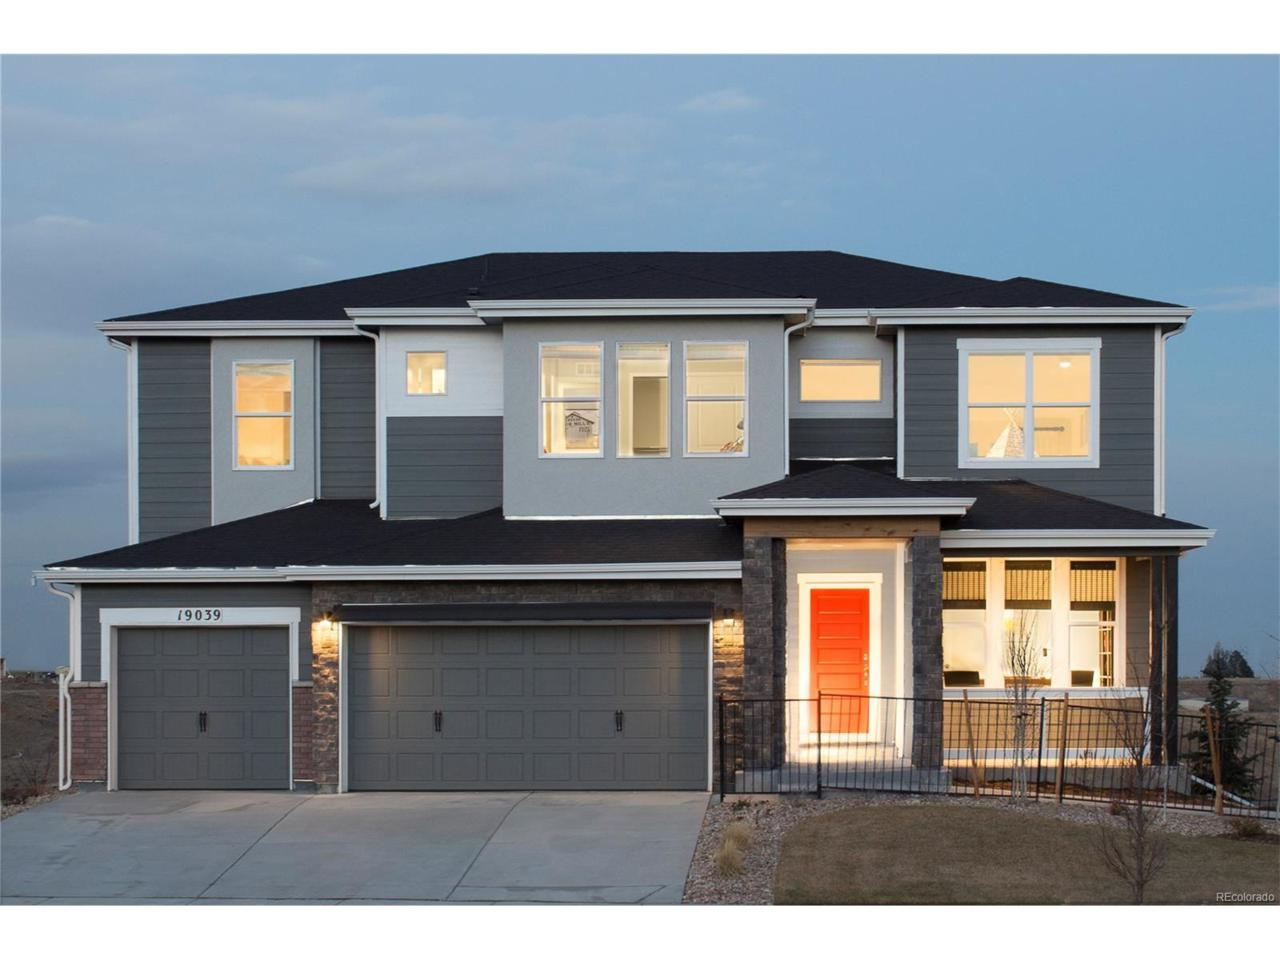 19239 W 88th Drive, Arvada, CO 80007 (MLS #4208608) :: 8z Real Estate